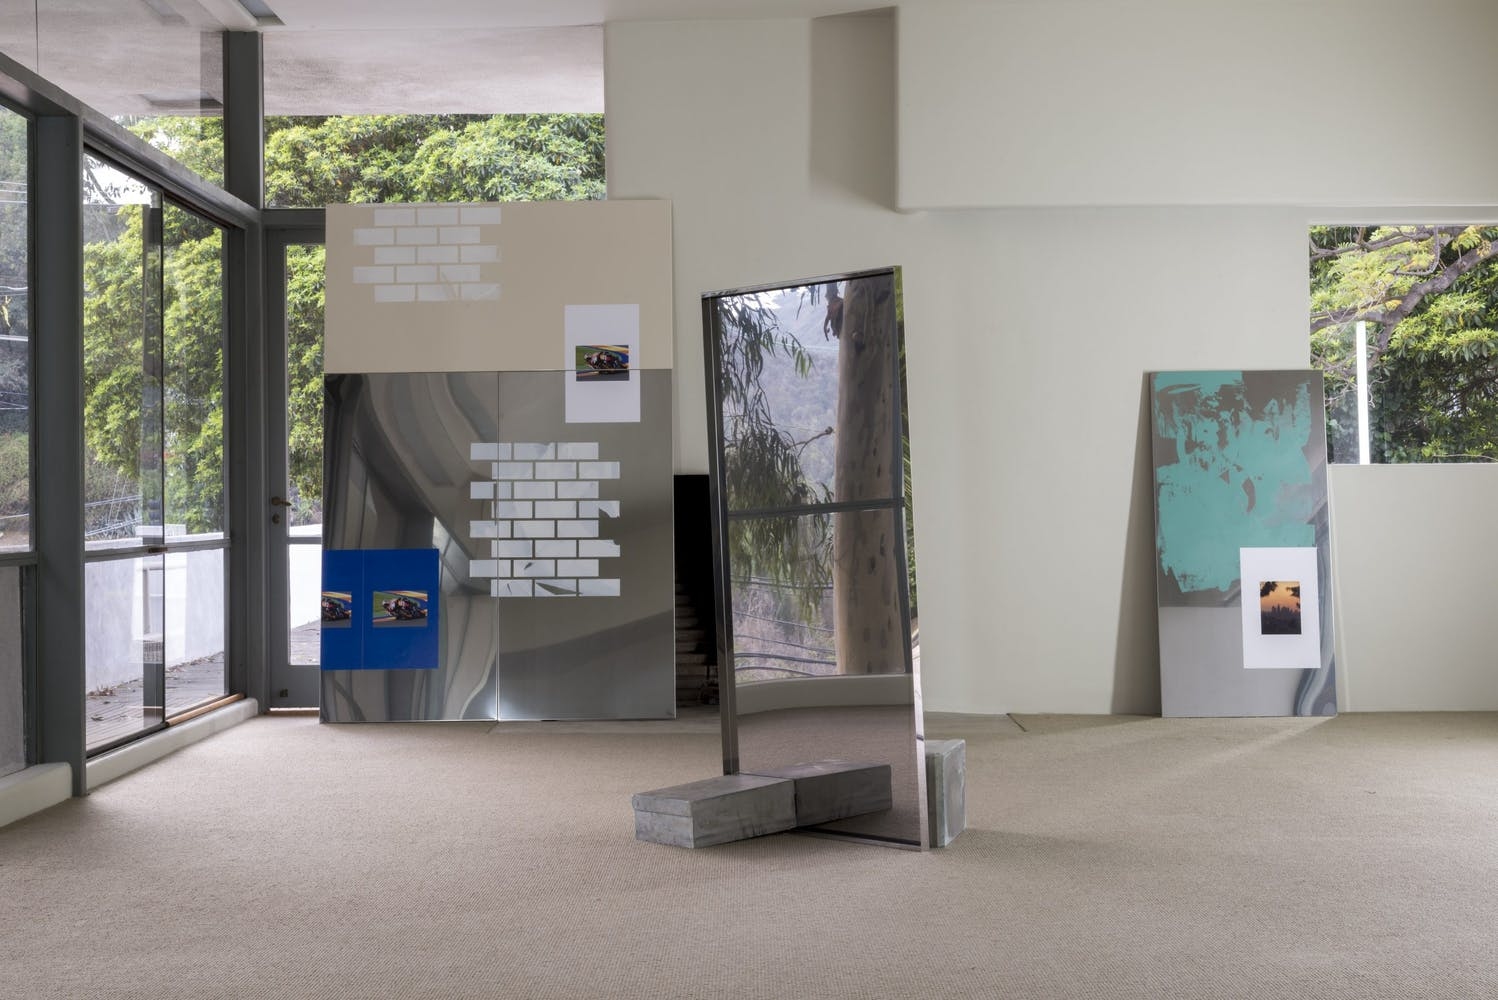 Image of lobby space with images and mirrors laying against walls